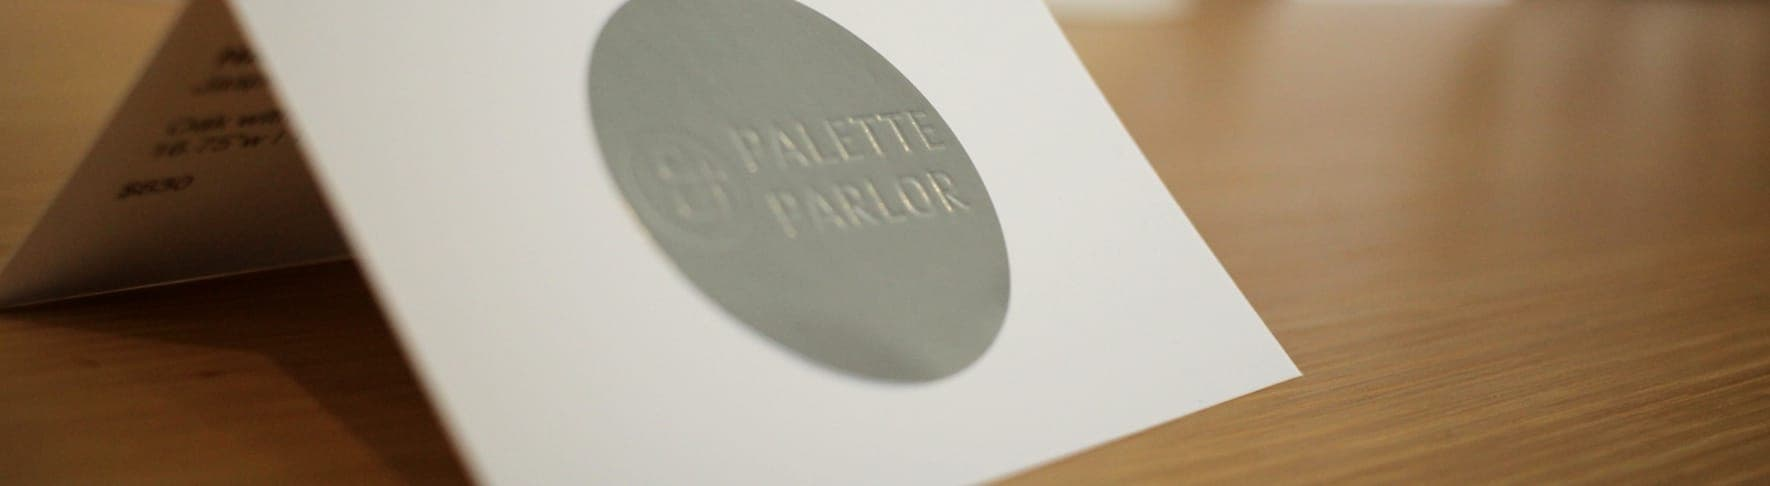 Print design of the Palette & Parlor logos